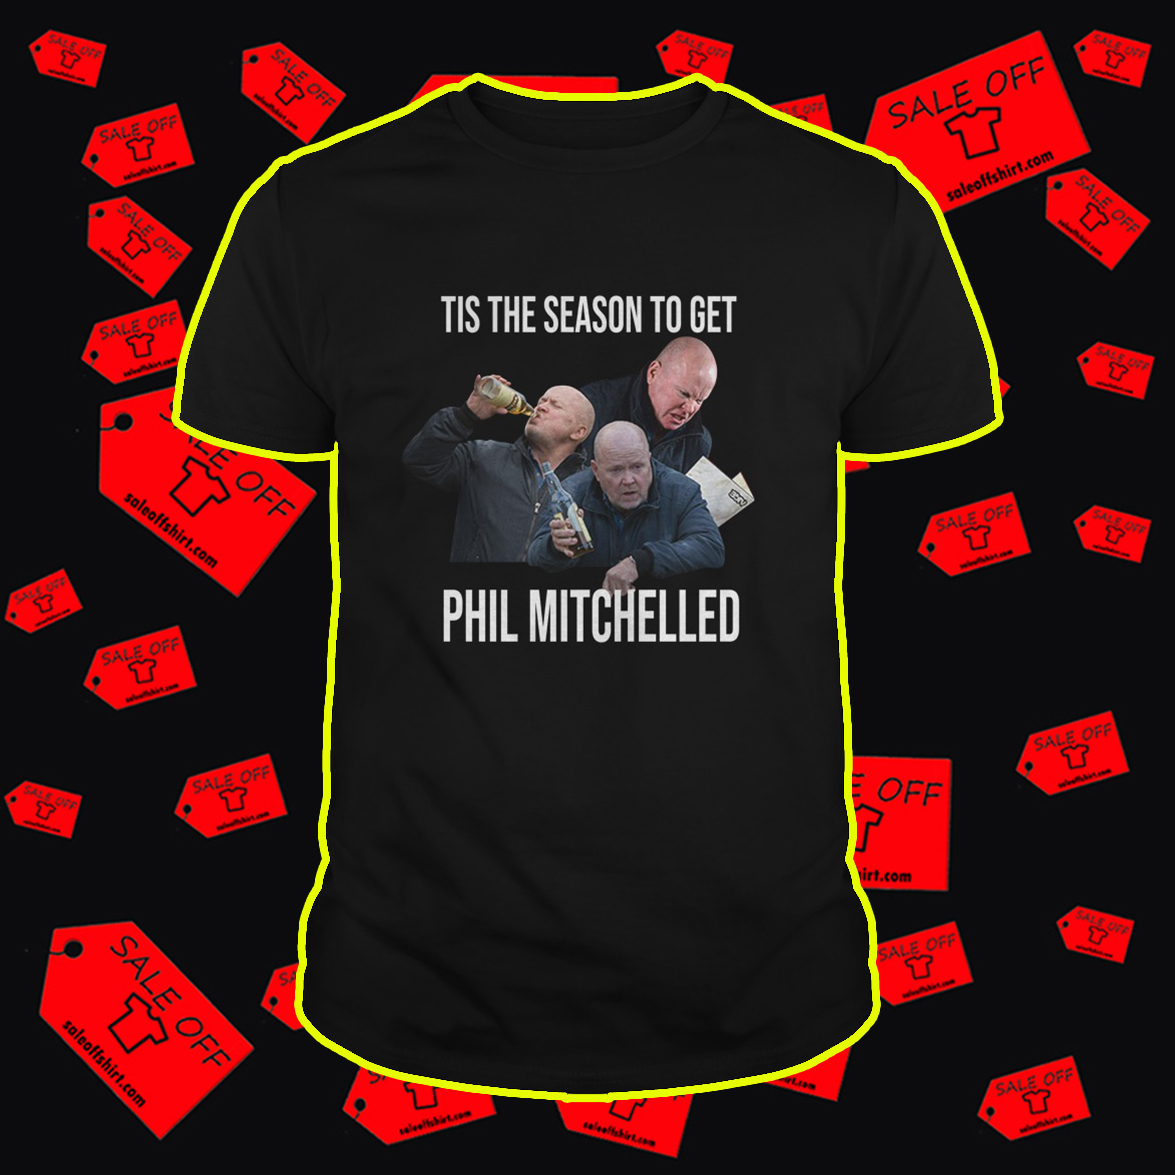 Tis The Season To Get Phil Mitchelled shirt